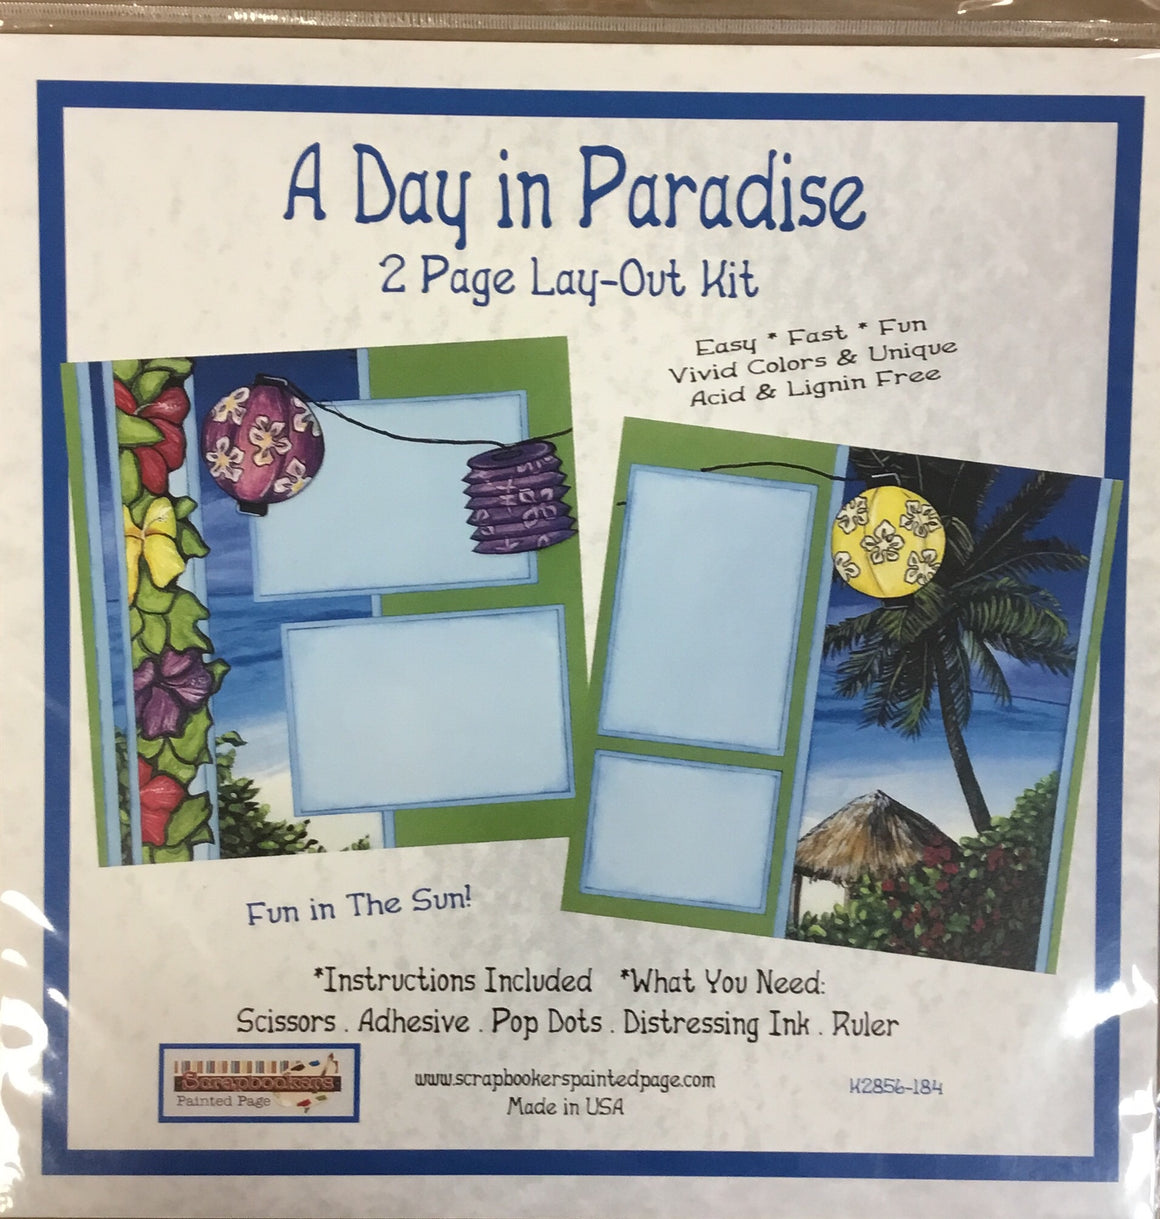 12x12 2 page layout kit A day in Paradise